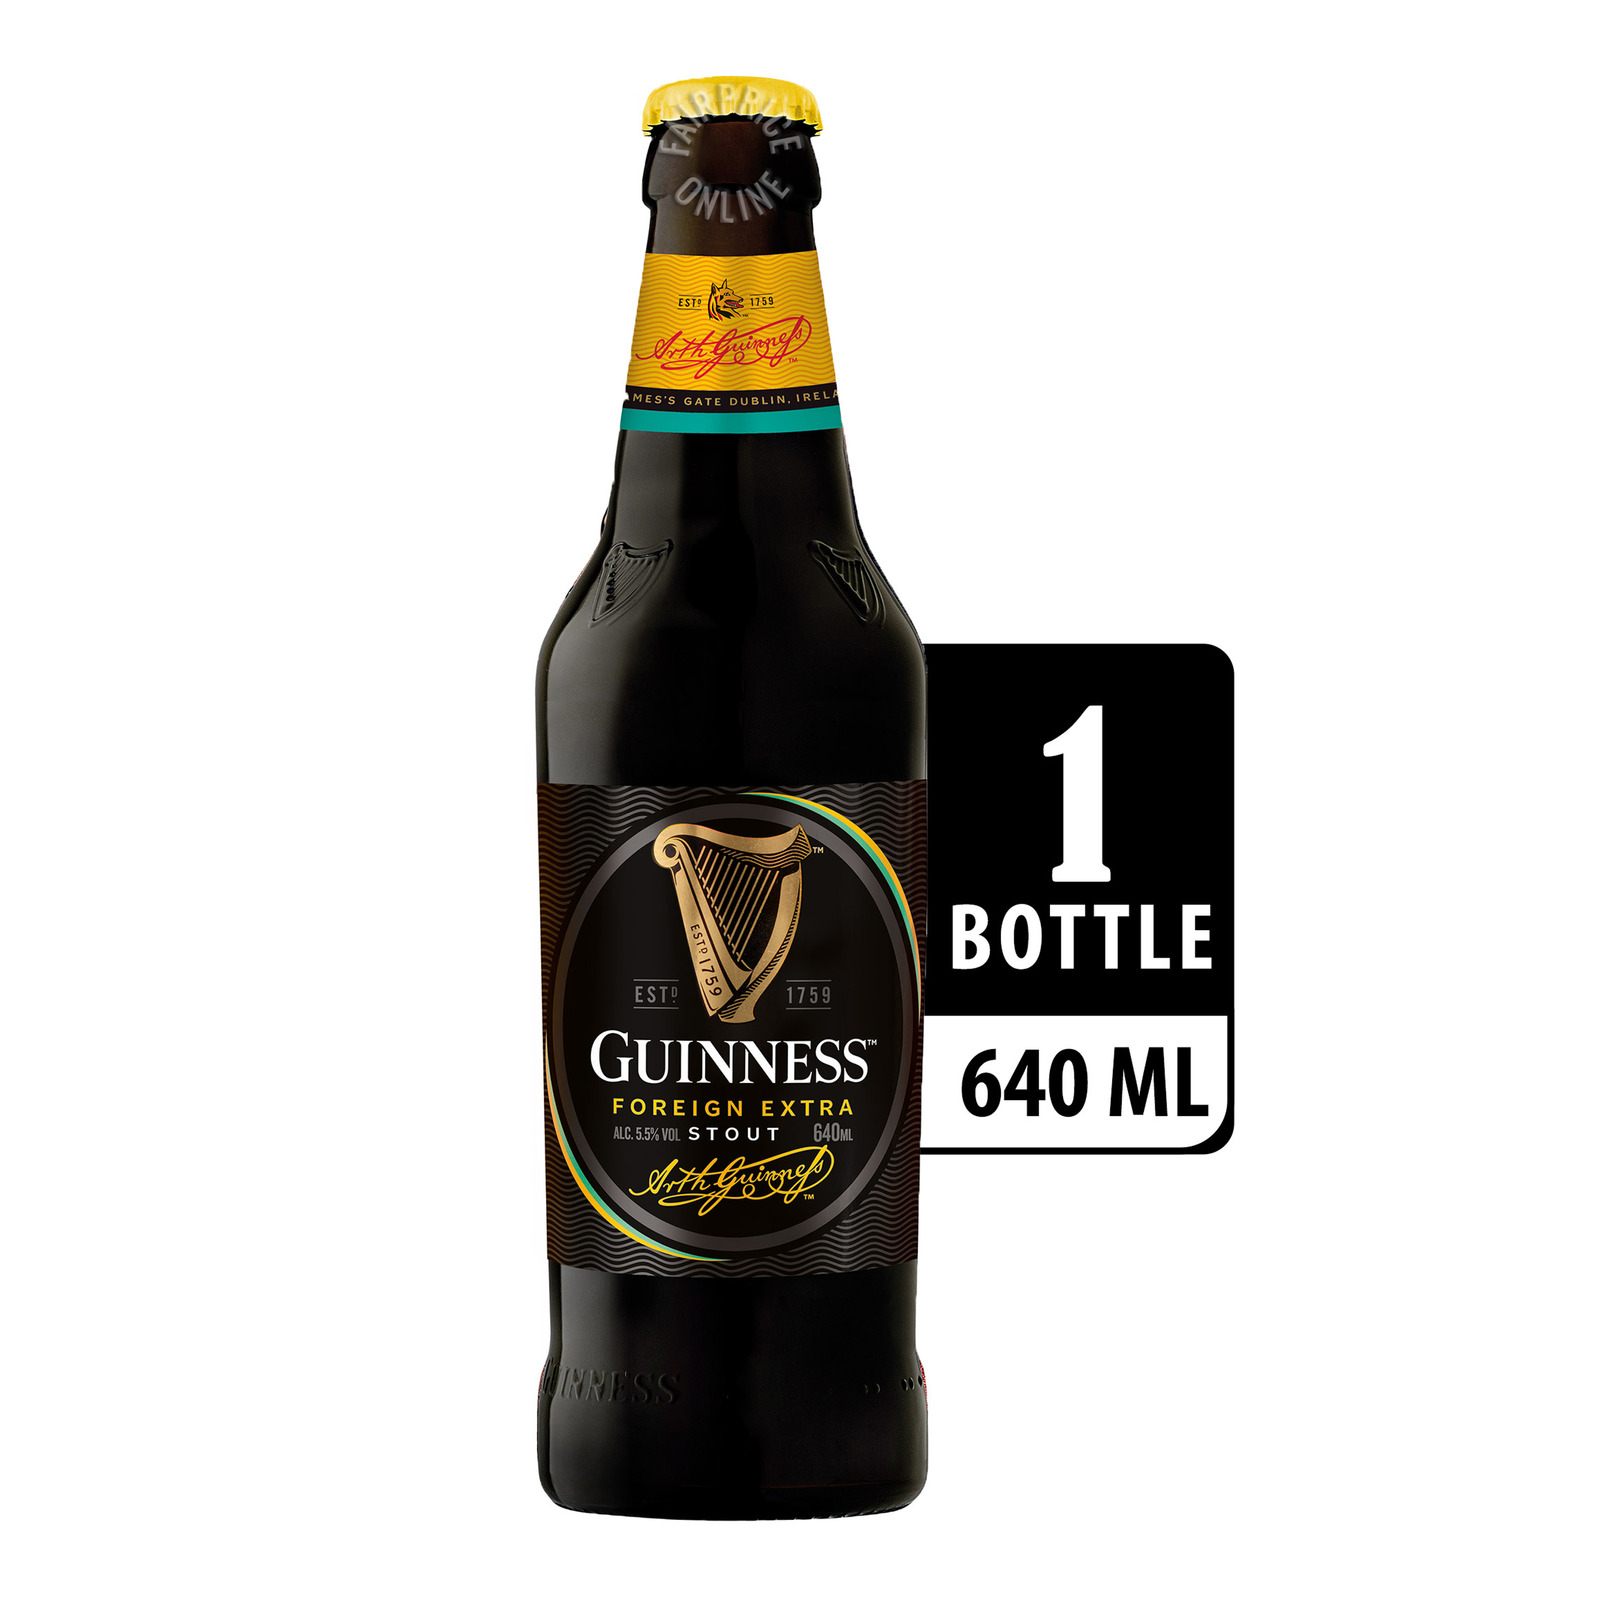 GUINNESS Foreign Extra Stout Beer Pint Bottle 640ml